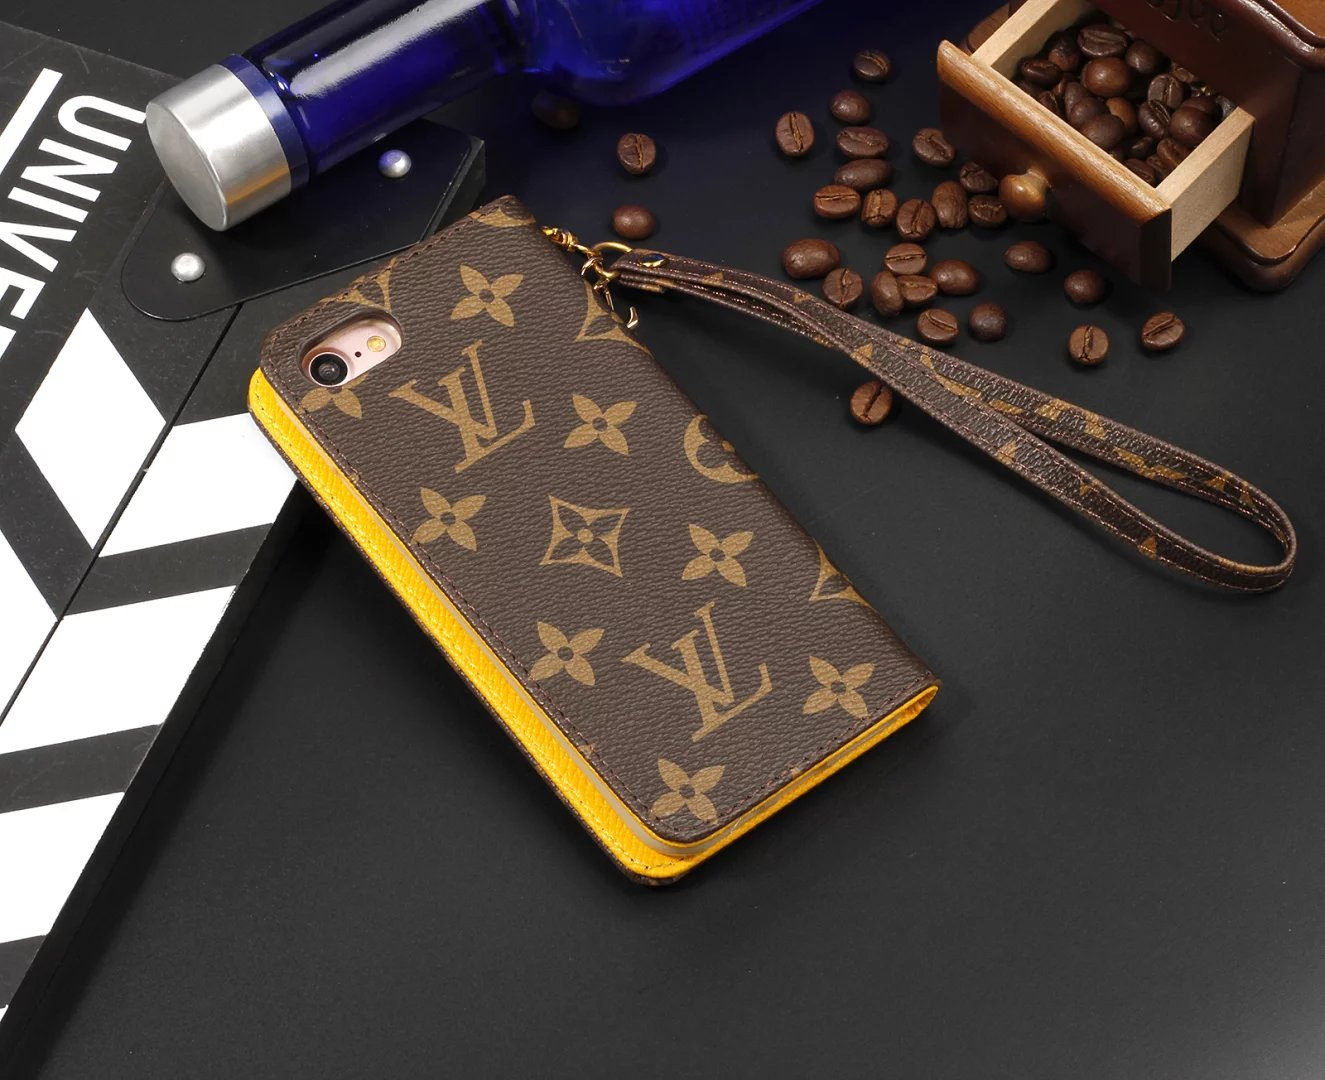 iphone 8 Plus cases online iphone 8 Plus case for 8 Plus Louis Vuitton iphone 8 Plus case iPhone 8 Plus 8 Plus best iPhone 8 Plus phone cases iphone covers iphone battery case mophie iphone 8 Plus case with cover iphone protective case